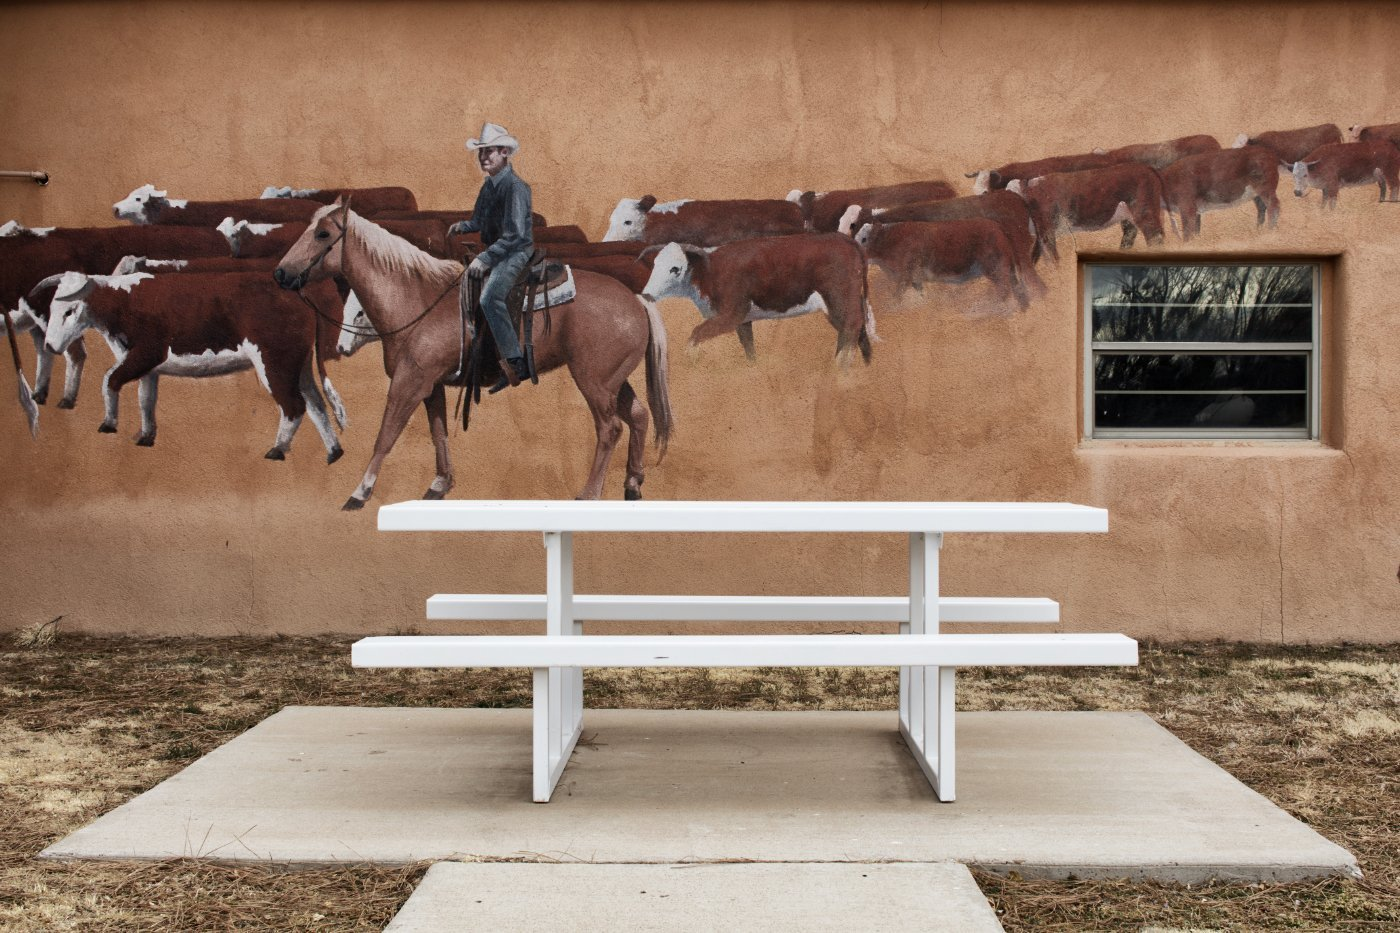 Rancher Mural and Park Bench, Mosquero, New Mexico, March 10, 2018